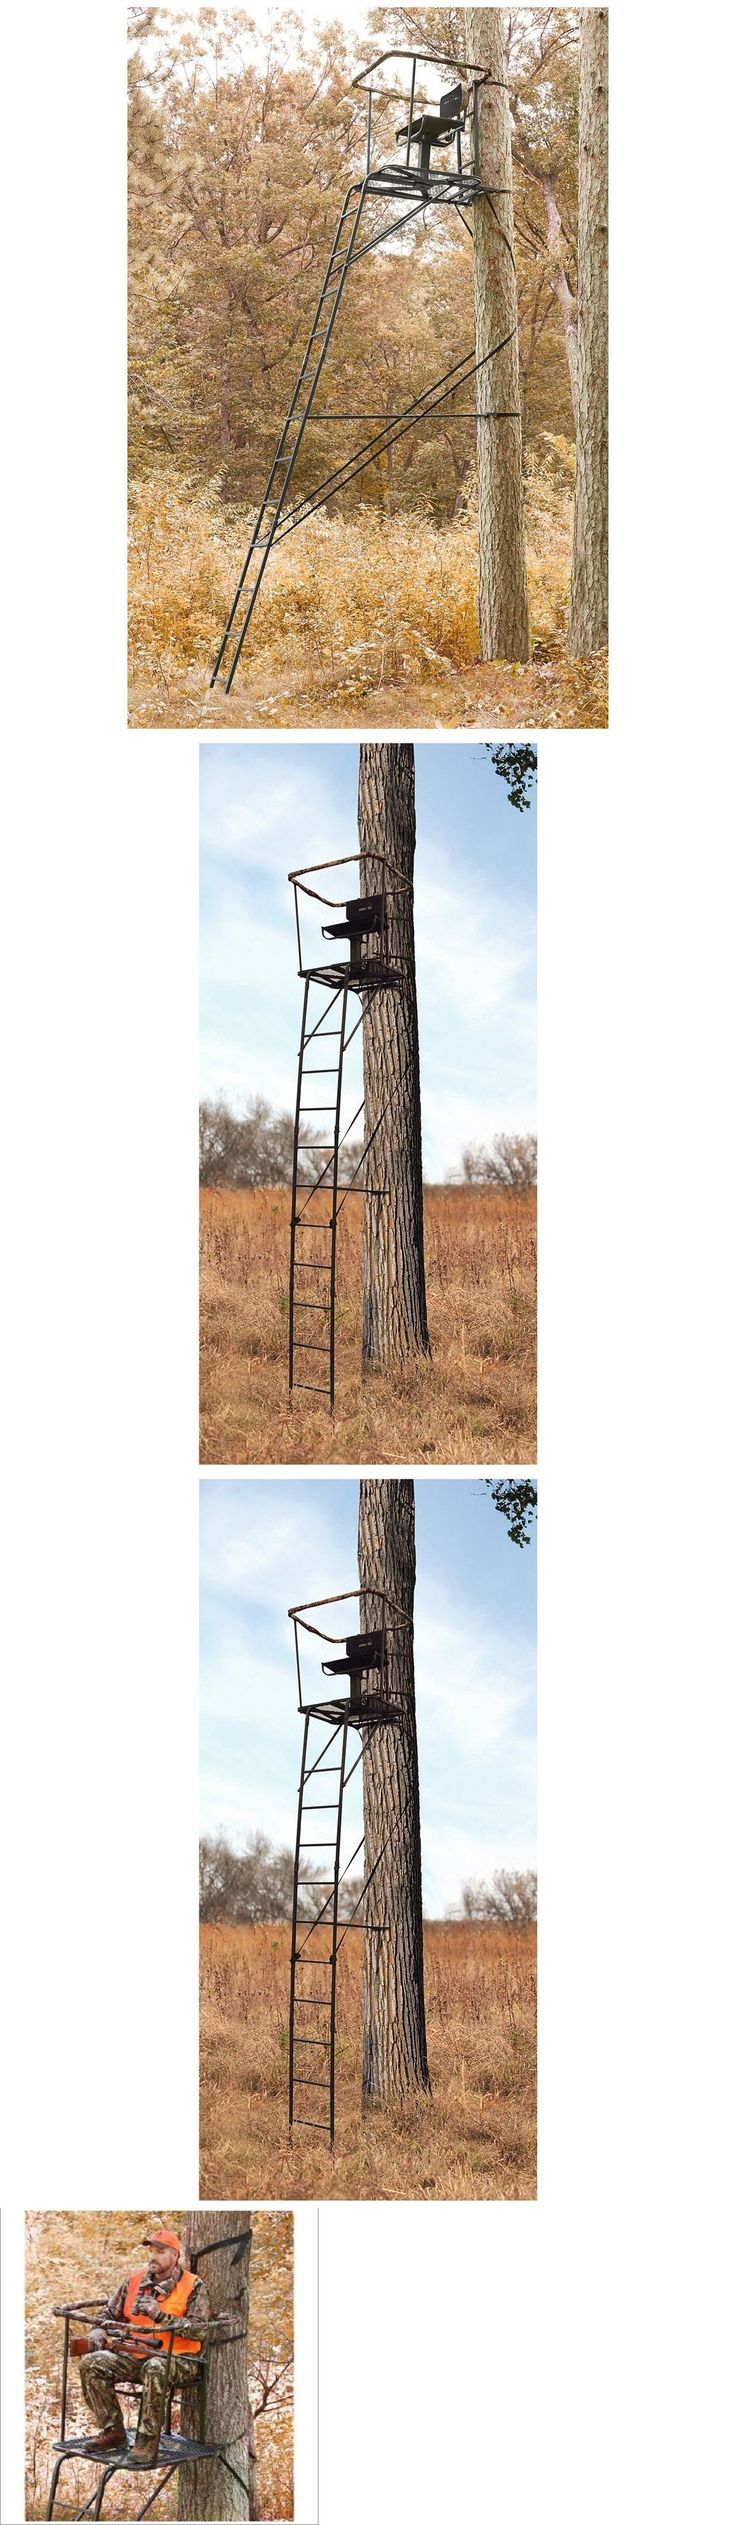 Tree Stands 52508: Ladder Tree Stand 16 Swivel Seat Chair Hunting Platform Deer Climping Big Game BUY IT NOW ONLY: $207.89